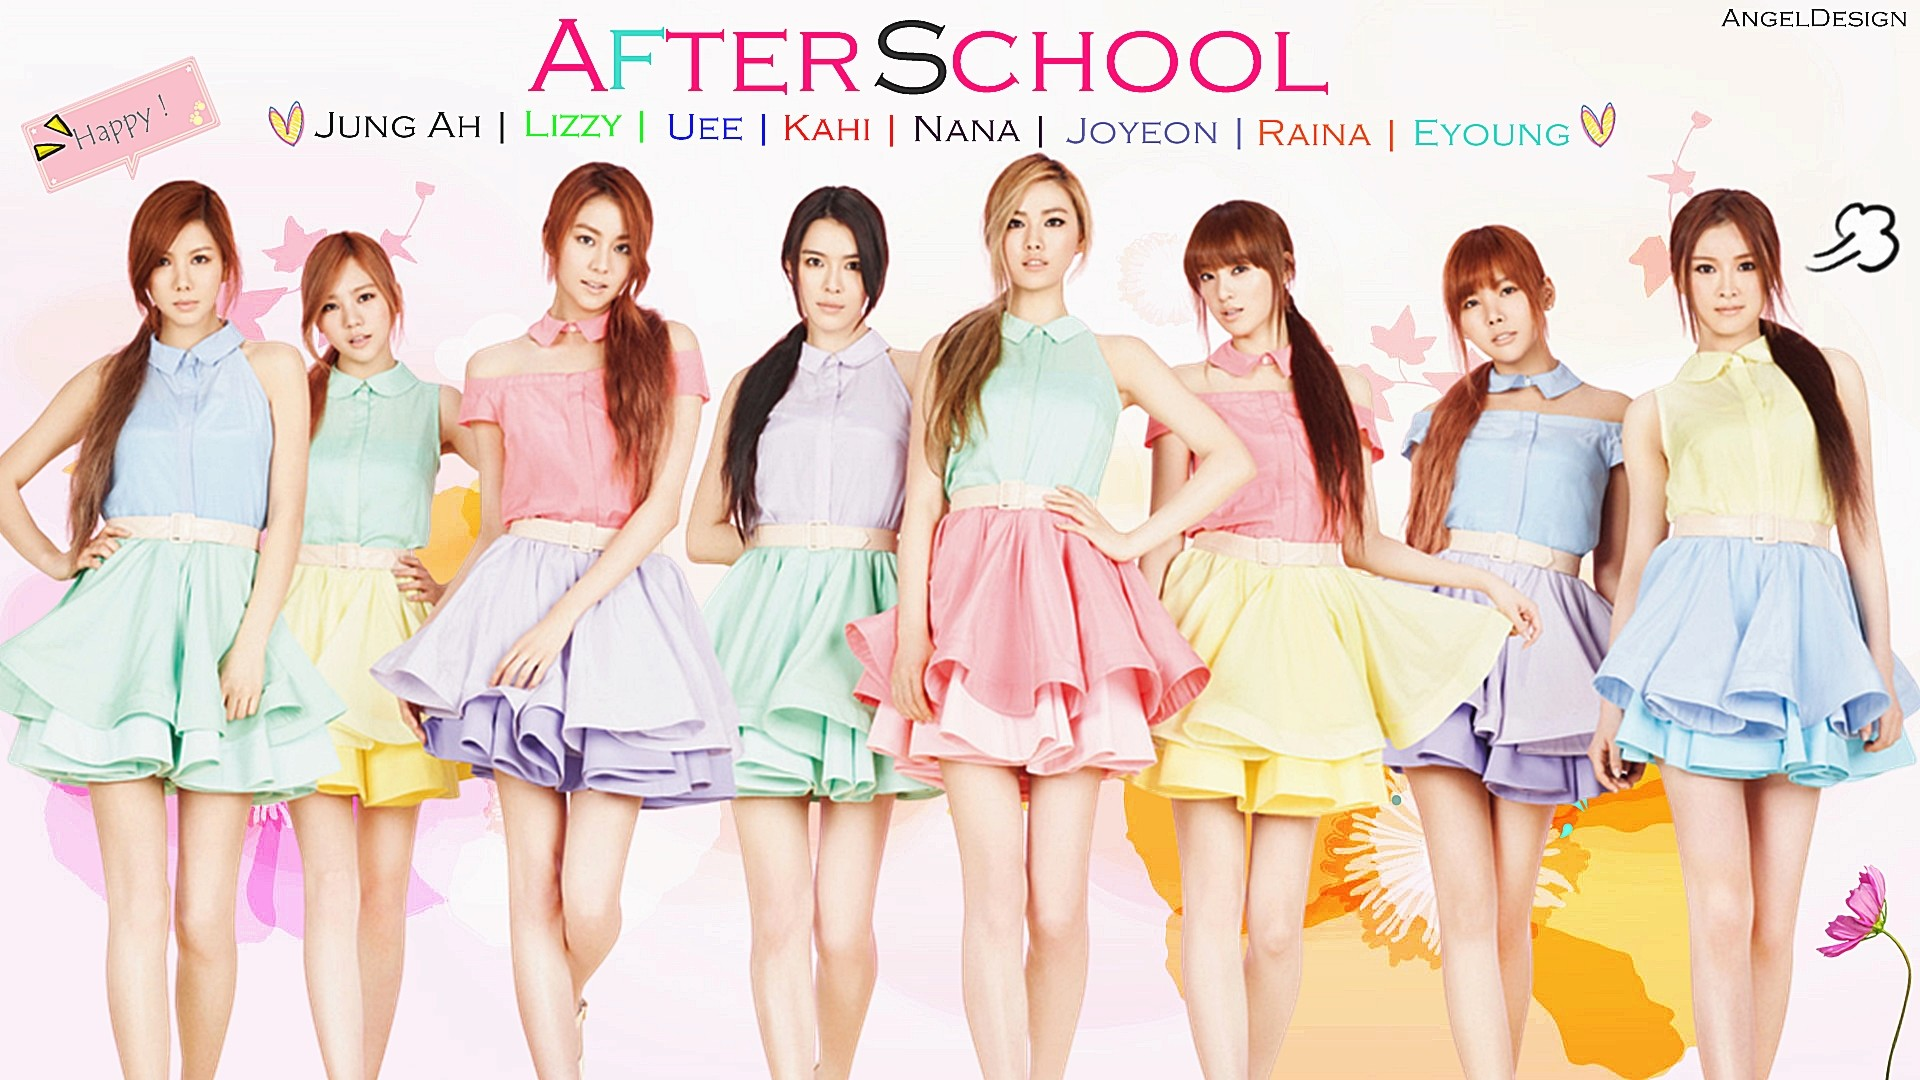 66 After School Wallpapers on WallpaperPlay 1920x1080